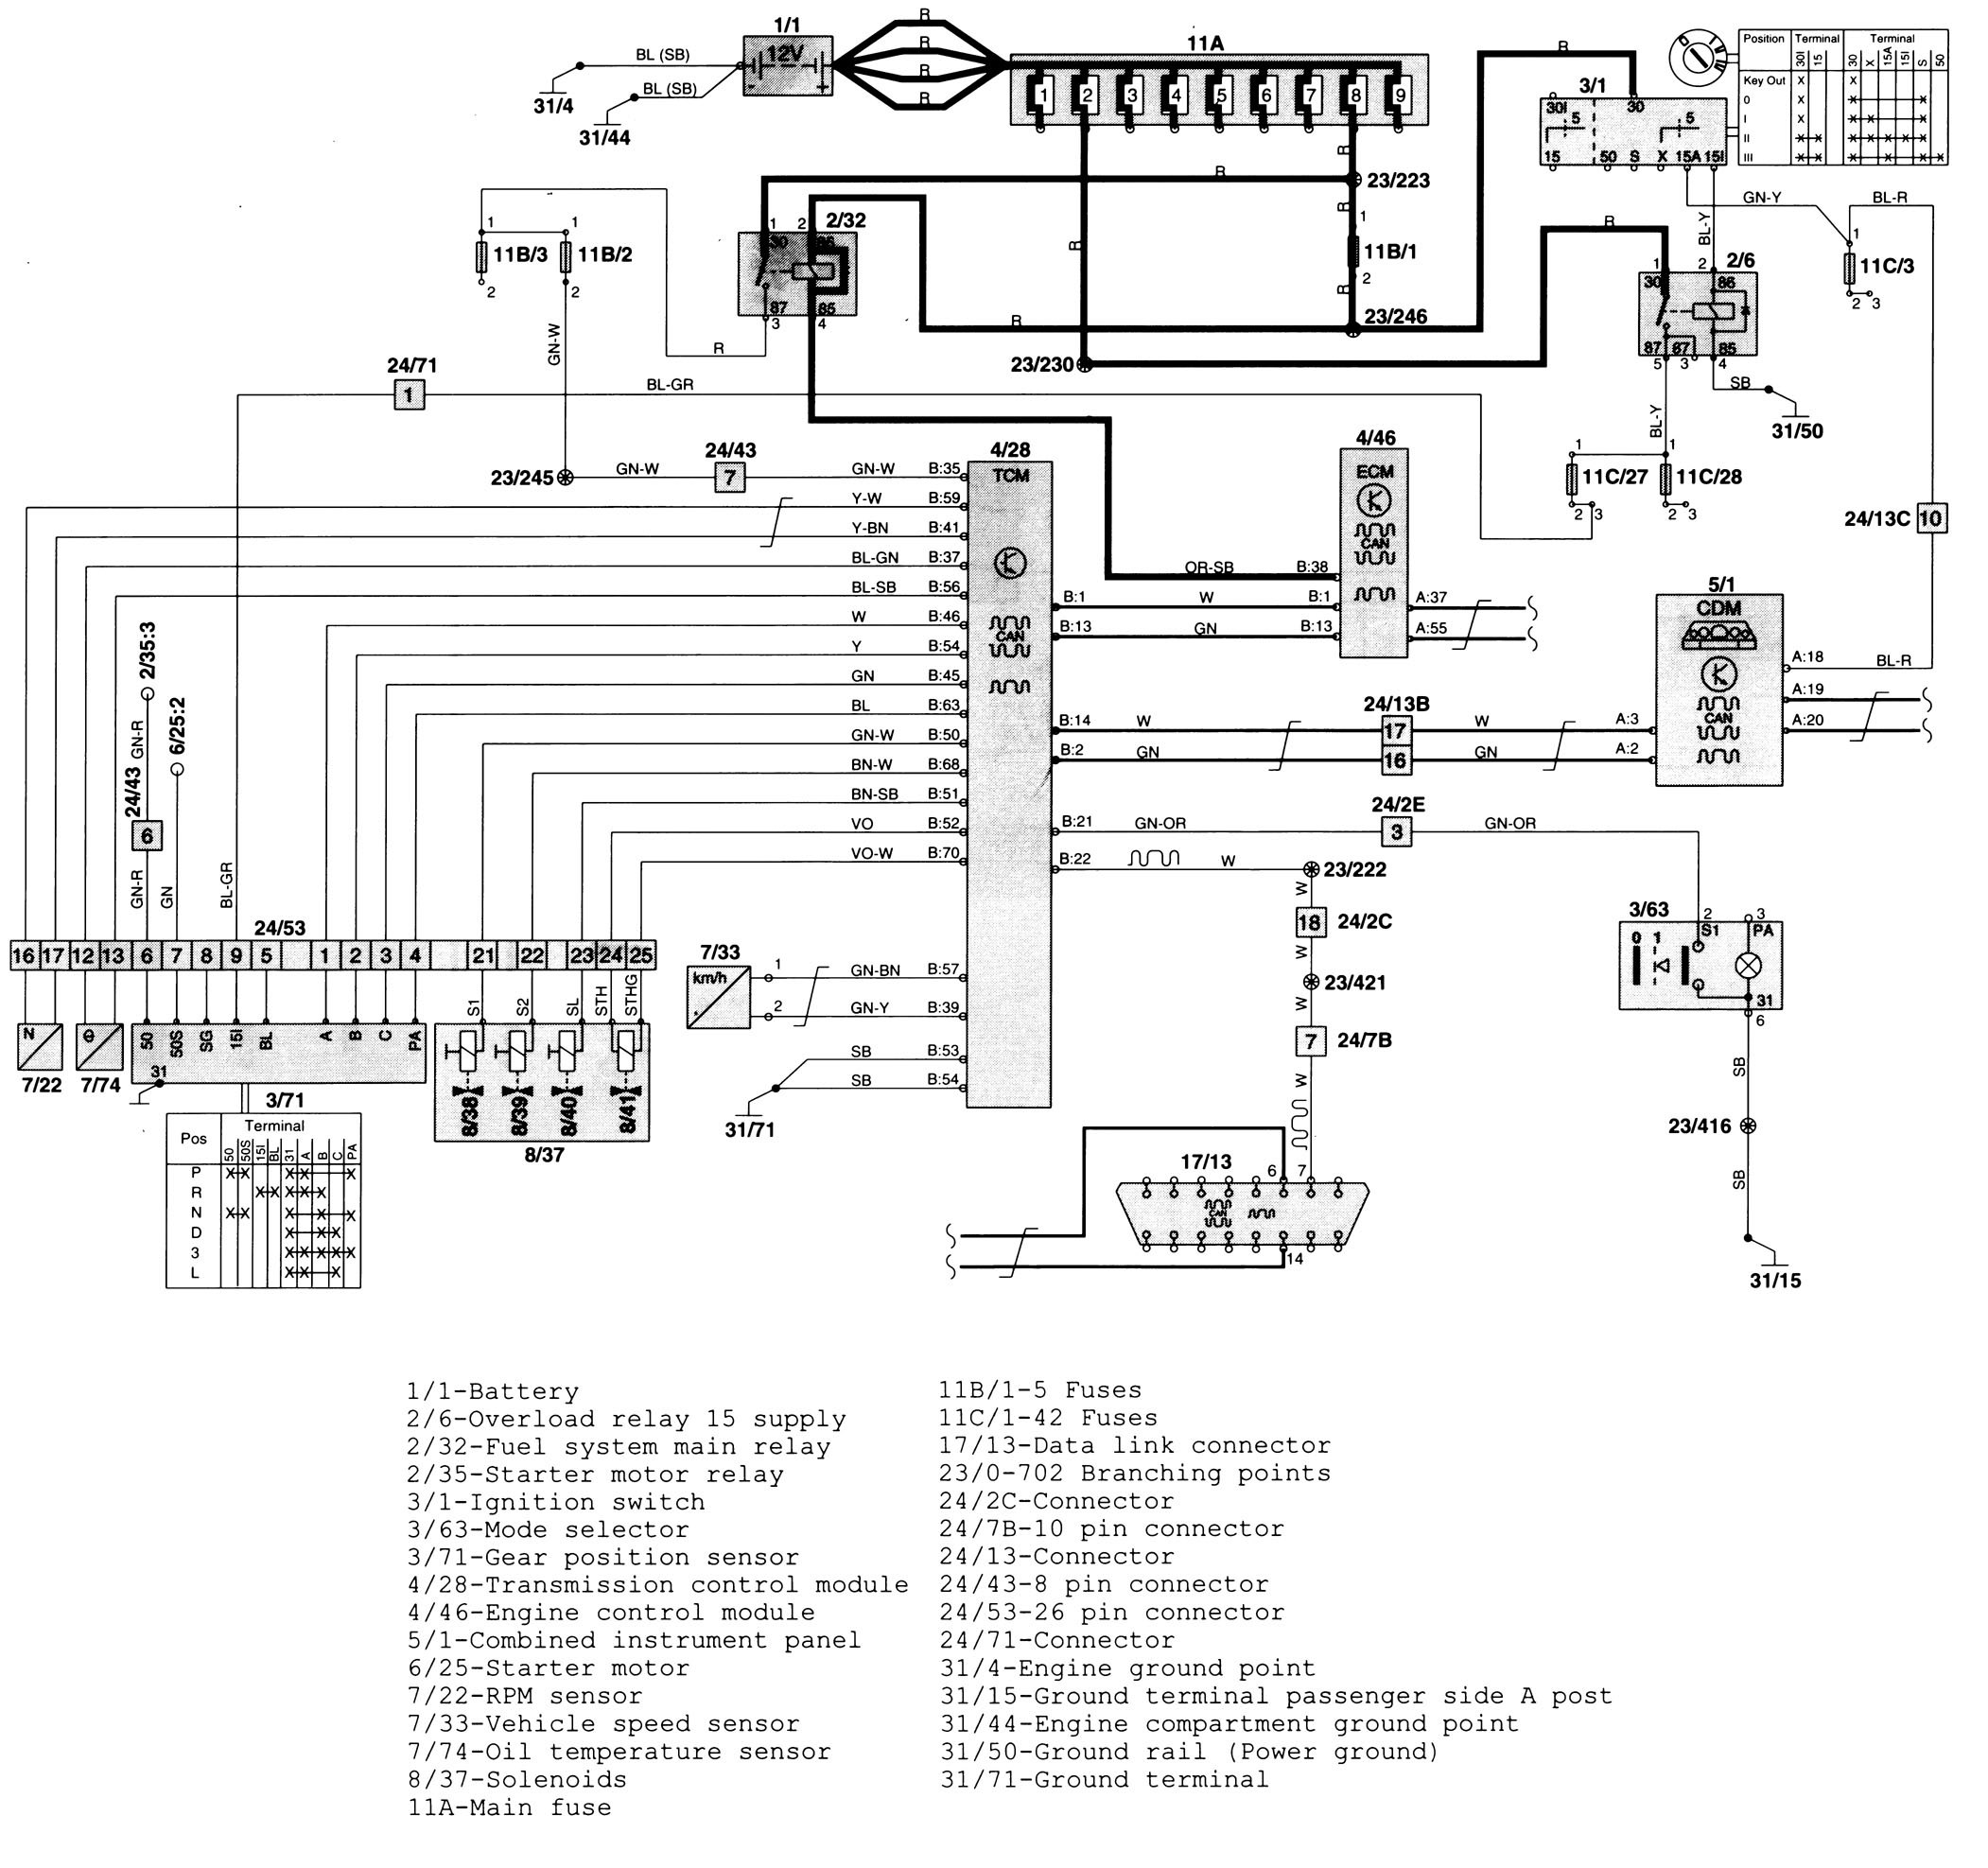 volvo c70 wiring diagram transmission controls 1999 volvo c70 (1999) wiring diagrams transmission controls 1999 volvo v70 seat heater wiring diagram at couponss.co